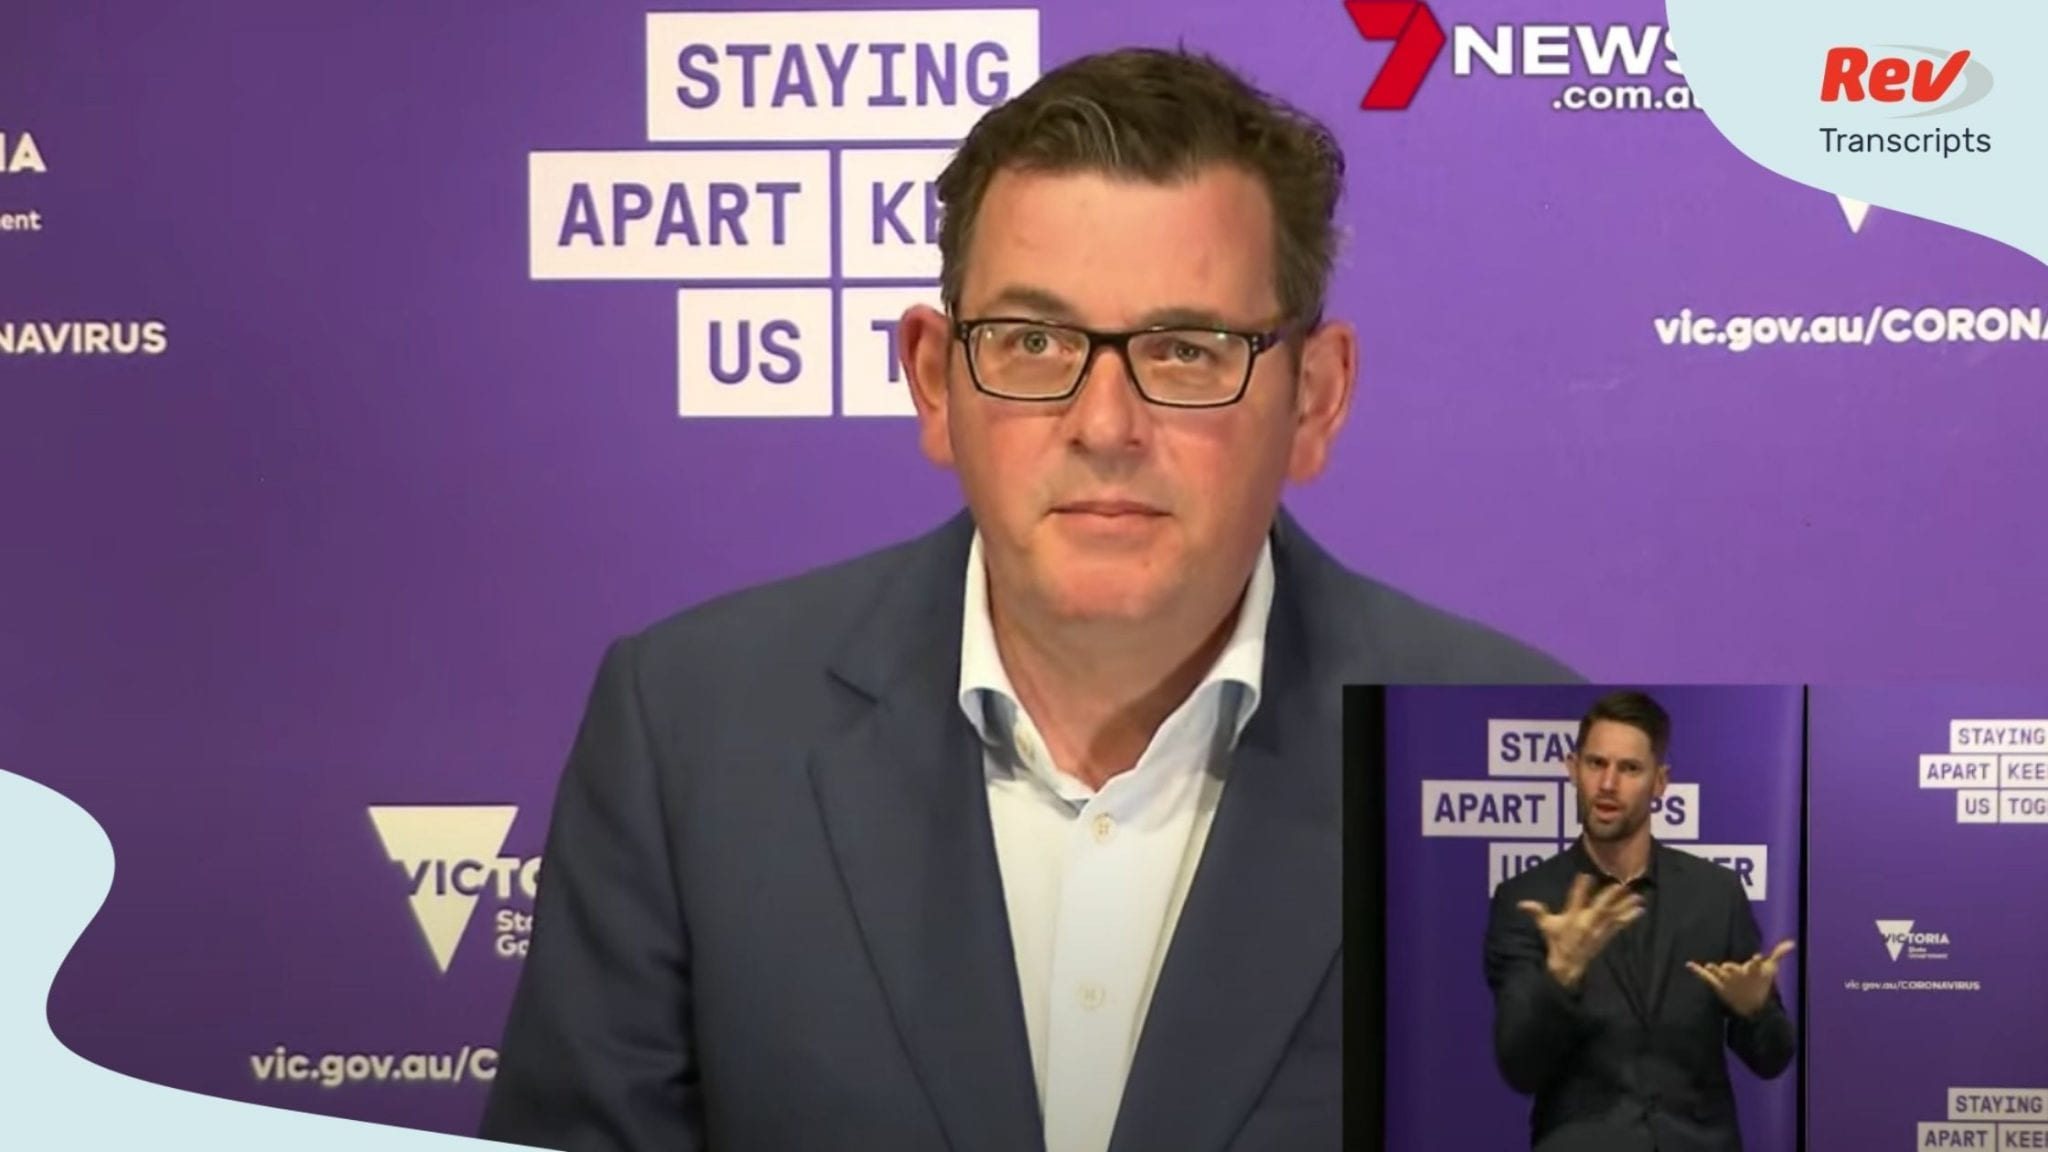 Victoria Premier Dan Andrews Press Conference Transcript August 7